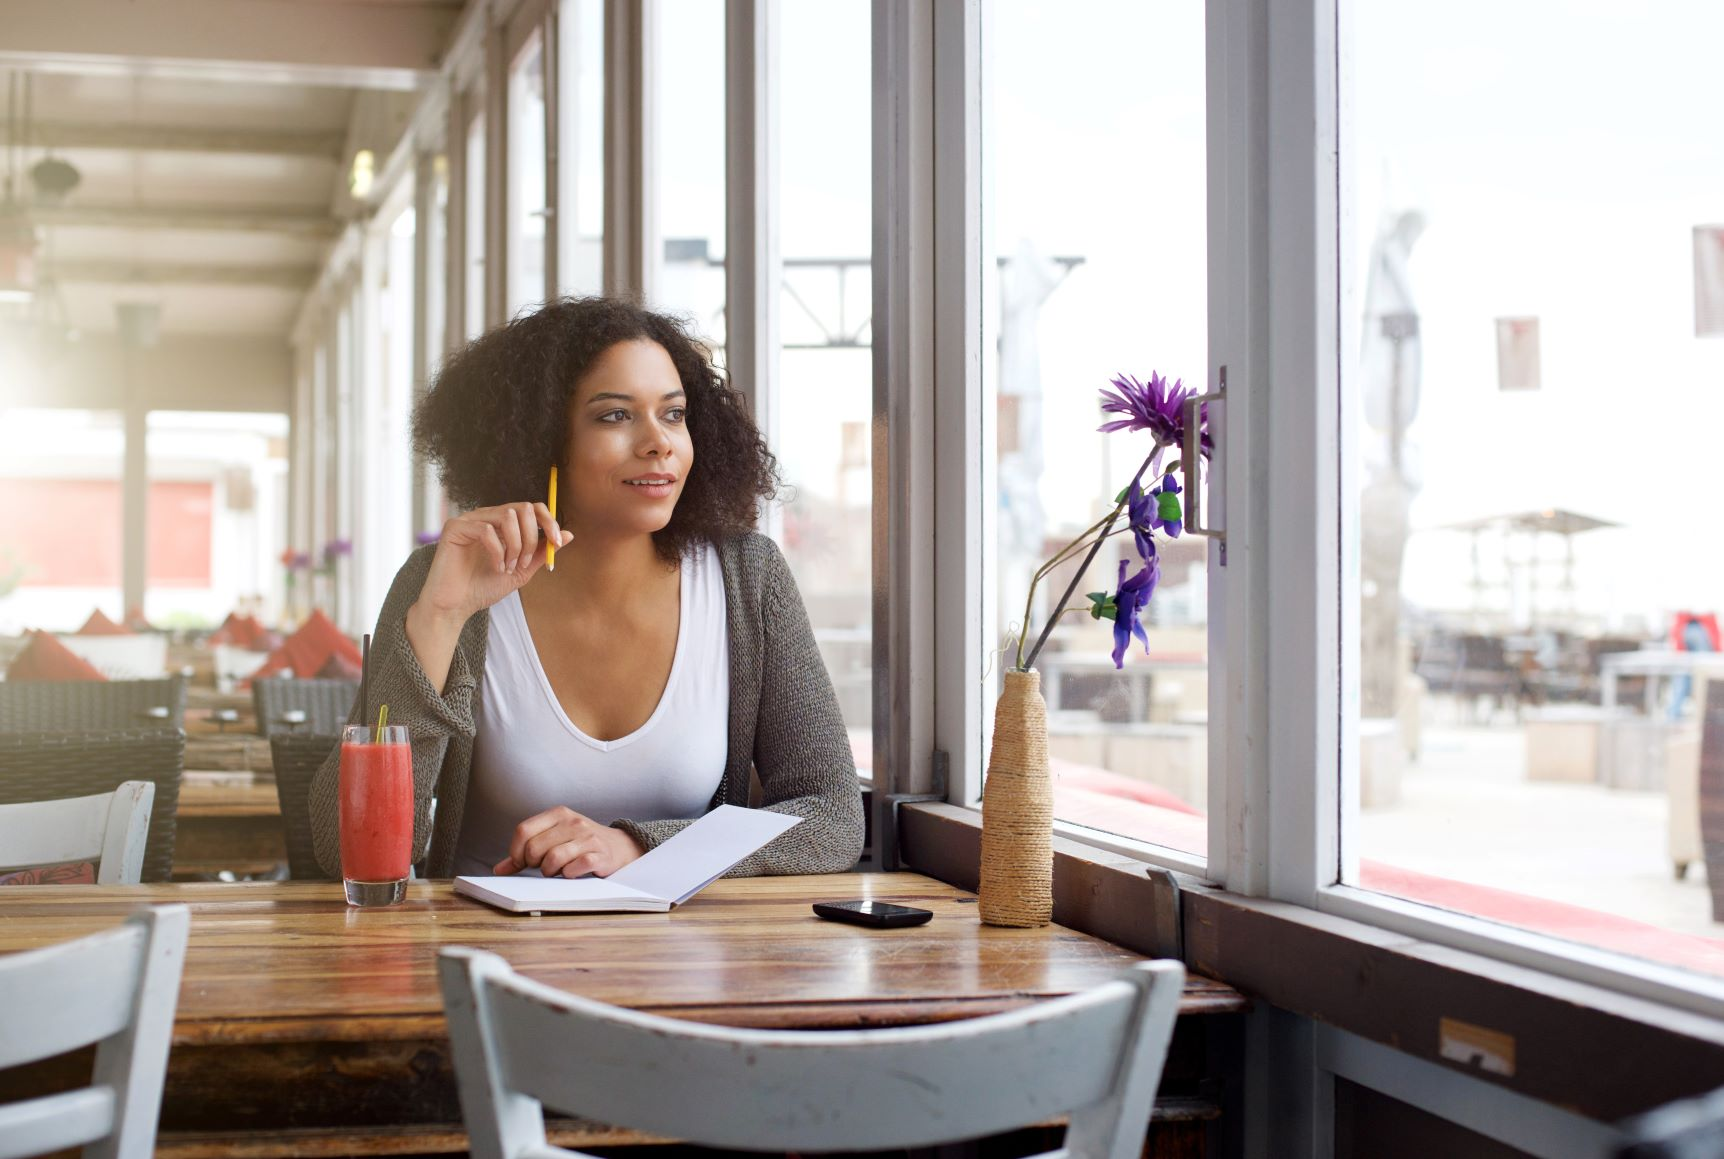 Black woman in white V-neck and grey cardigan at diner table writing and looking out window, manifestation for beginners, manifest your dream life